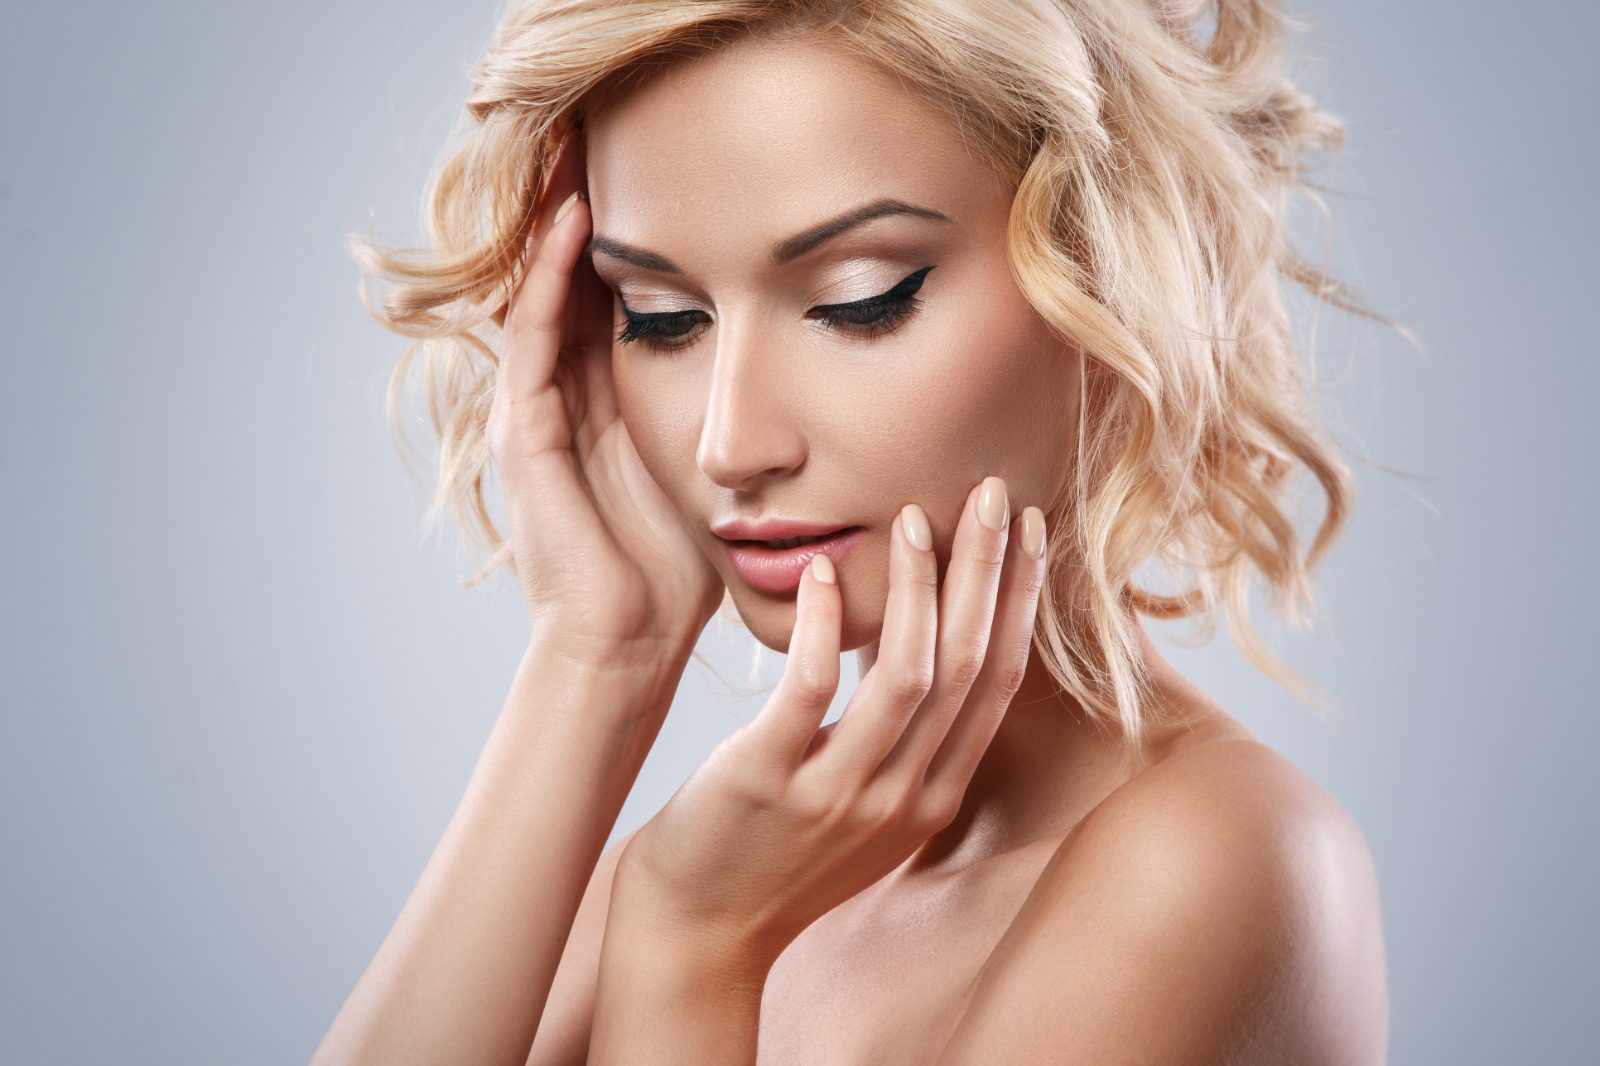 Beautifusion IV Therapy